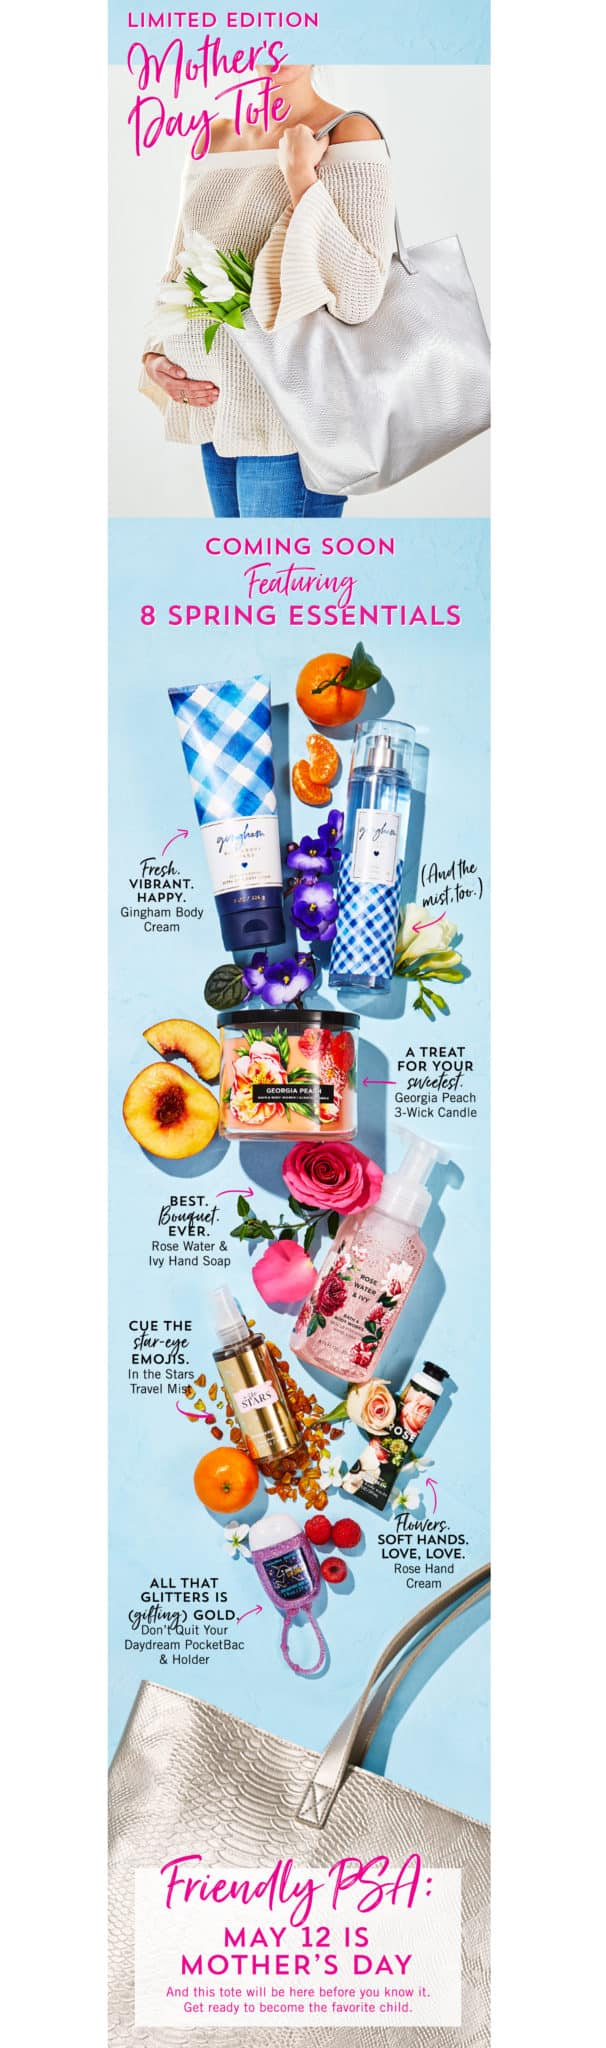 Bath & Body Works VIP Mother's Day Tote 2019 Available Soon & Spoilers